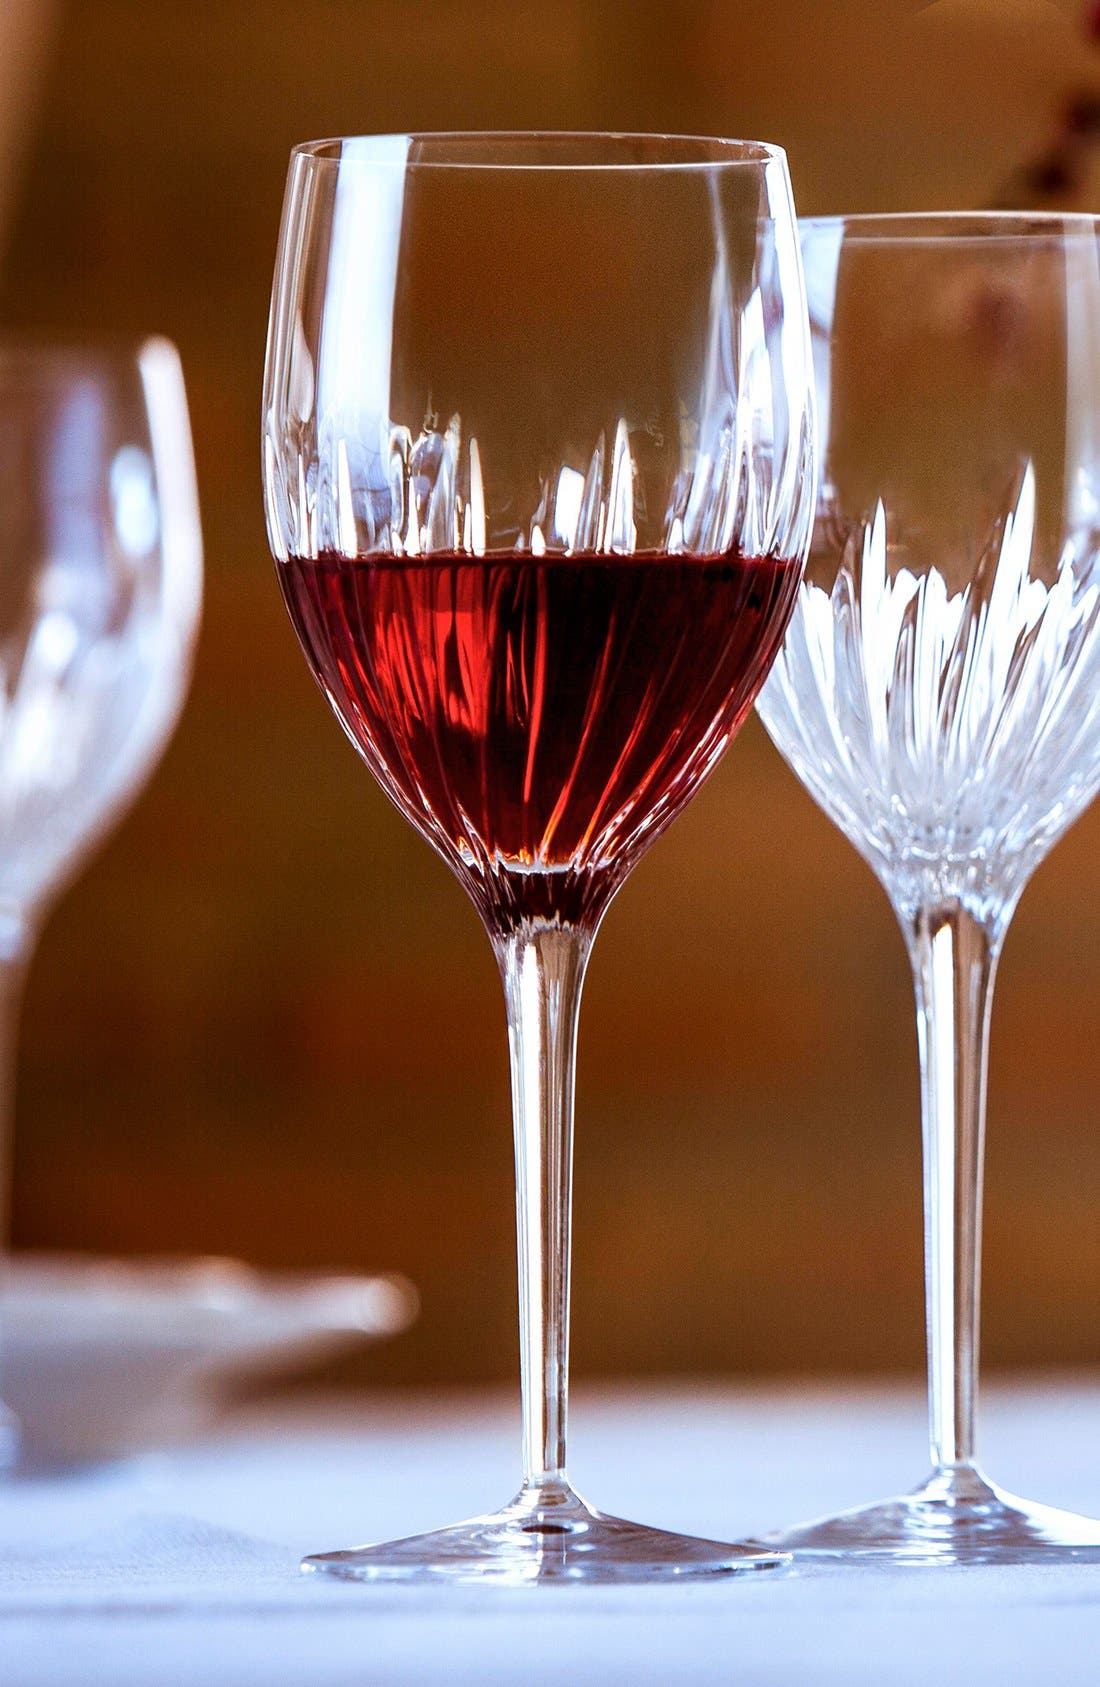 Incanto Set of 4 Red Wine Glasses,                             Alternate thumbnail 4, color,                             CLEAR